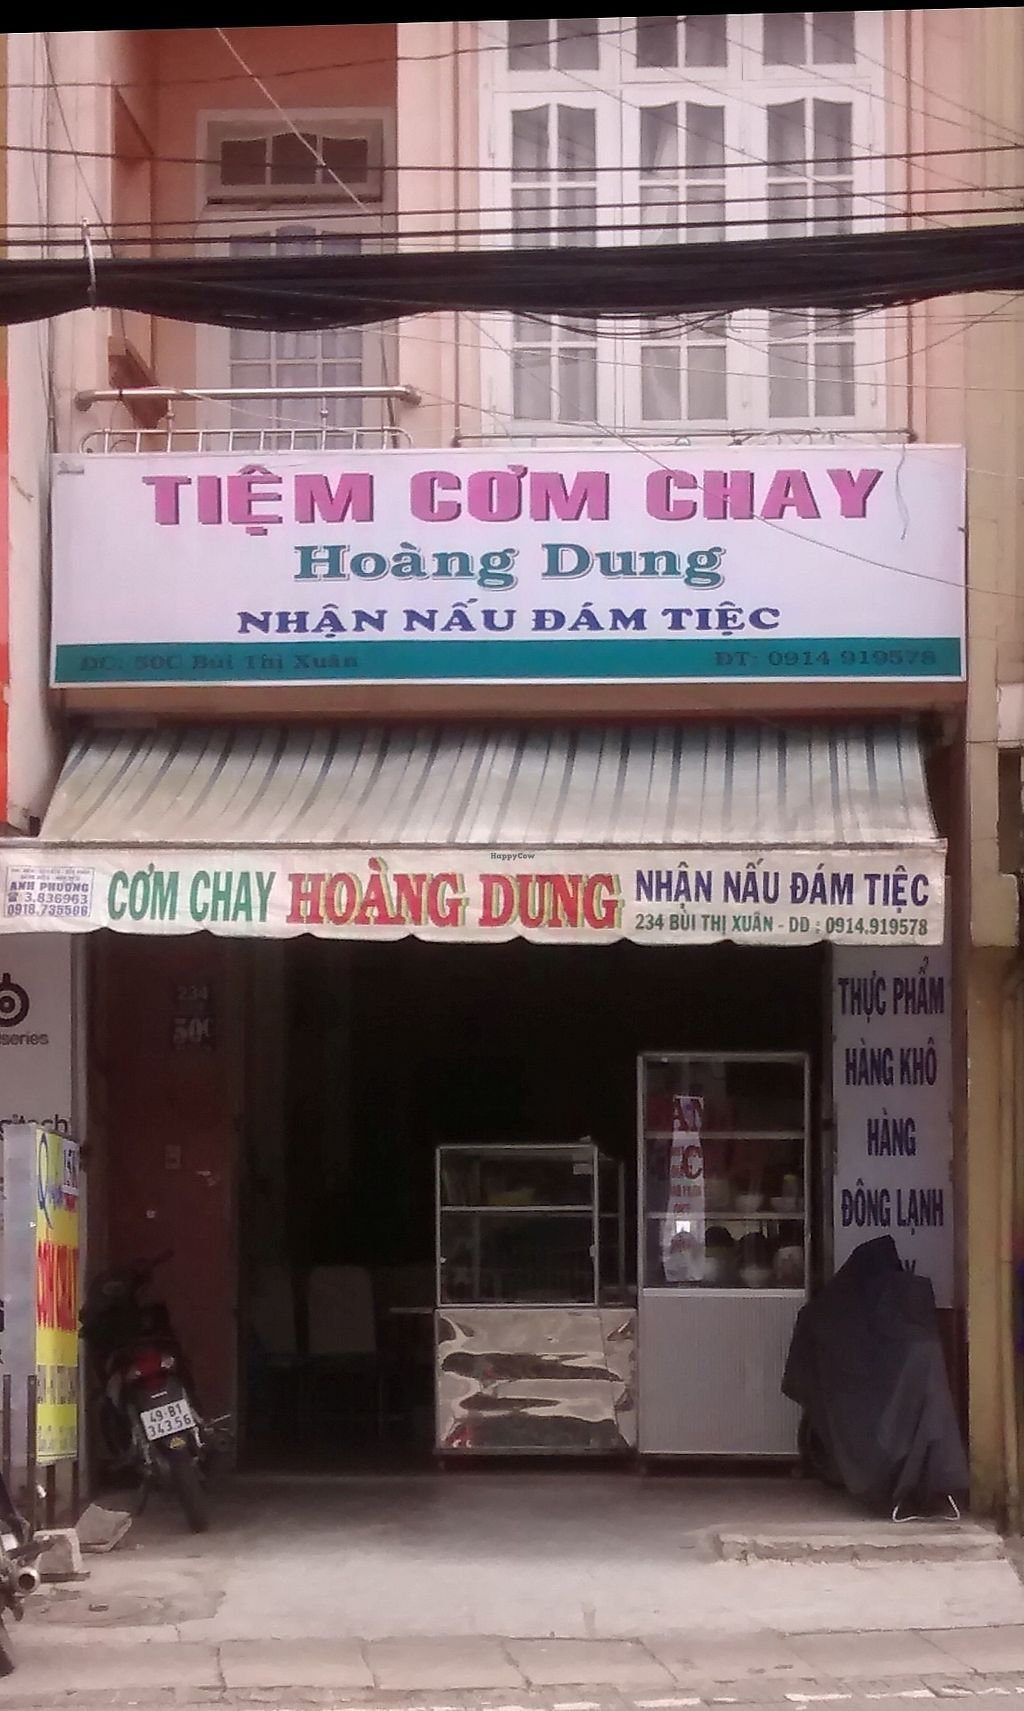 """Photo of Hoang Dung  by <a href=""""/members/profile/Canamon"""">Canamon</a> <br/>Front view <br/> December 3, 2017  - <a href='/contact/abuse/image/106433/331861'>Report</a>"""